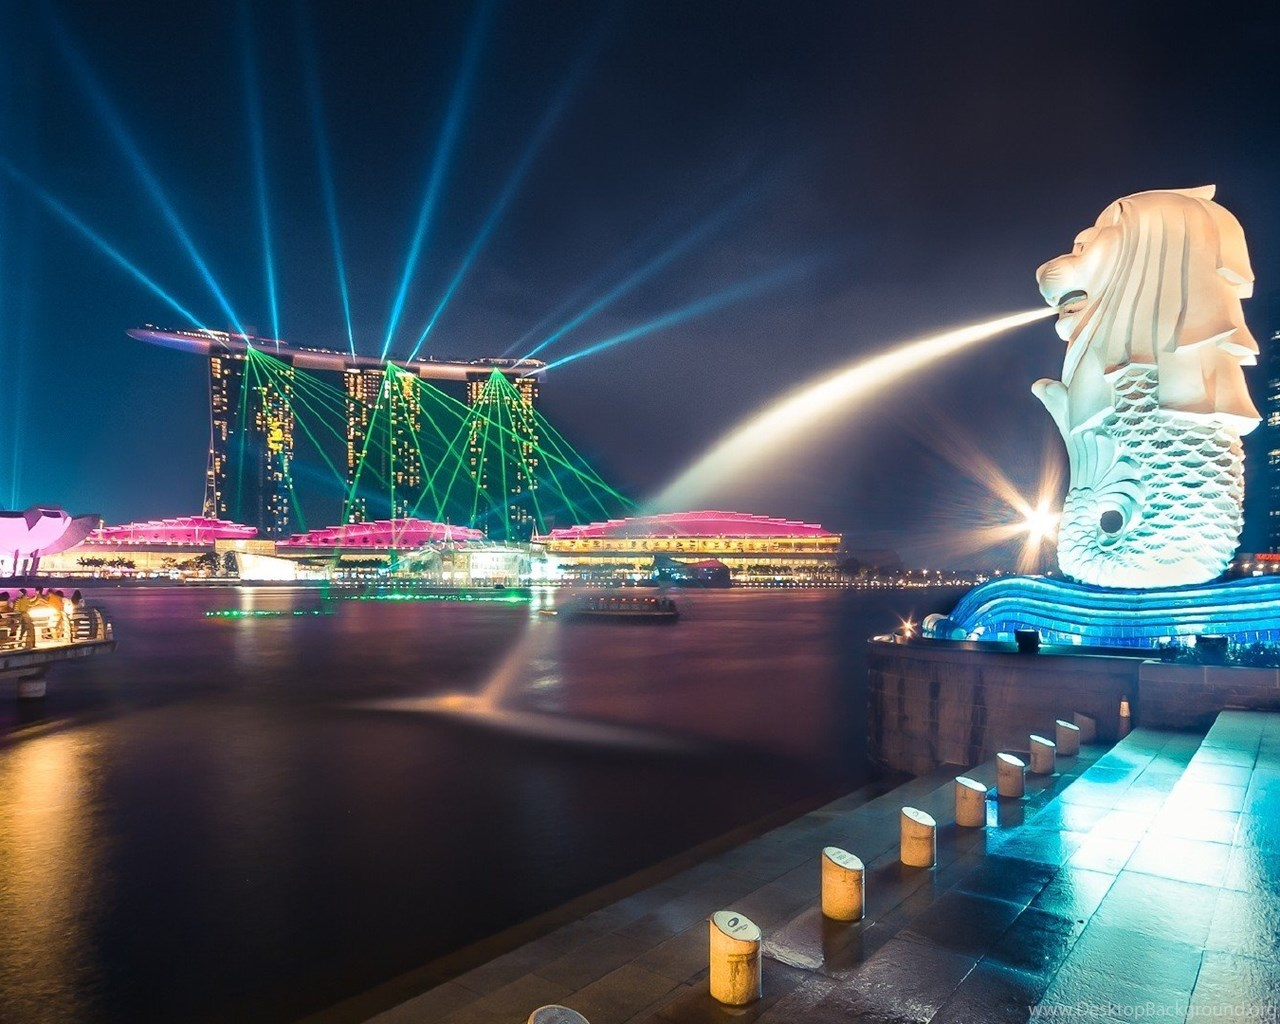 Download Wallpaper Hd For Android Mobile High Resolution Singapore Merlion At Night Wallpapers Full